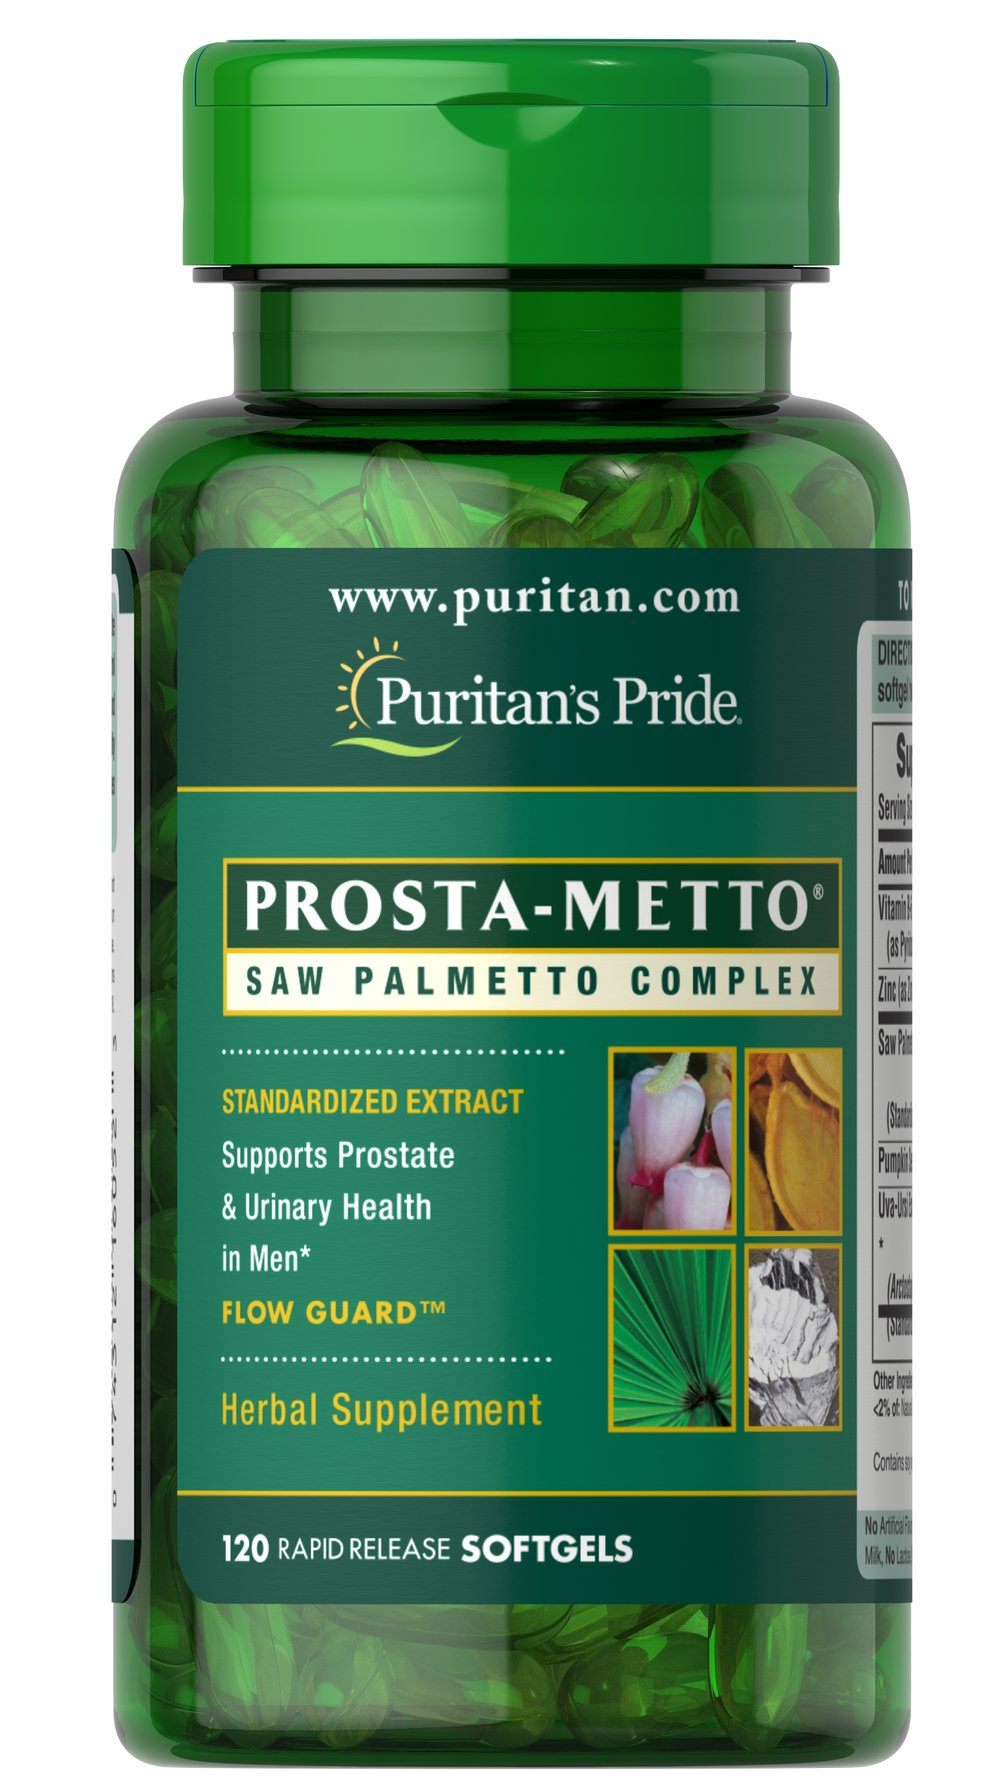 Prosta-Metto® Saw Palmetto Complex For Men <p>Extra Strength Prosta-Metto® softgels deliver 160 mg of standardized Saw Palmetto to support prostate and urinary health in men.** Saw Palmetto is an extract derived from the berry of the Saw Palmetto tree and is the leading herb for men's health.** This formulation also includes Pumpkin Seed Oil and Uva-Ursi, traditional ingredients for men's health, plus Zinc for the immune system.** </p> 120 Softgels  $17.49